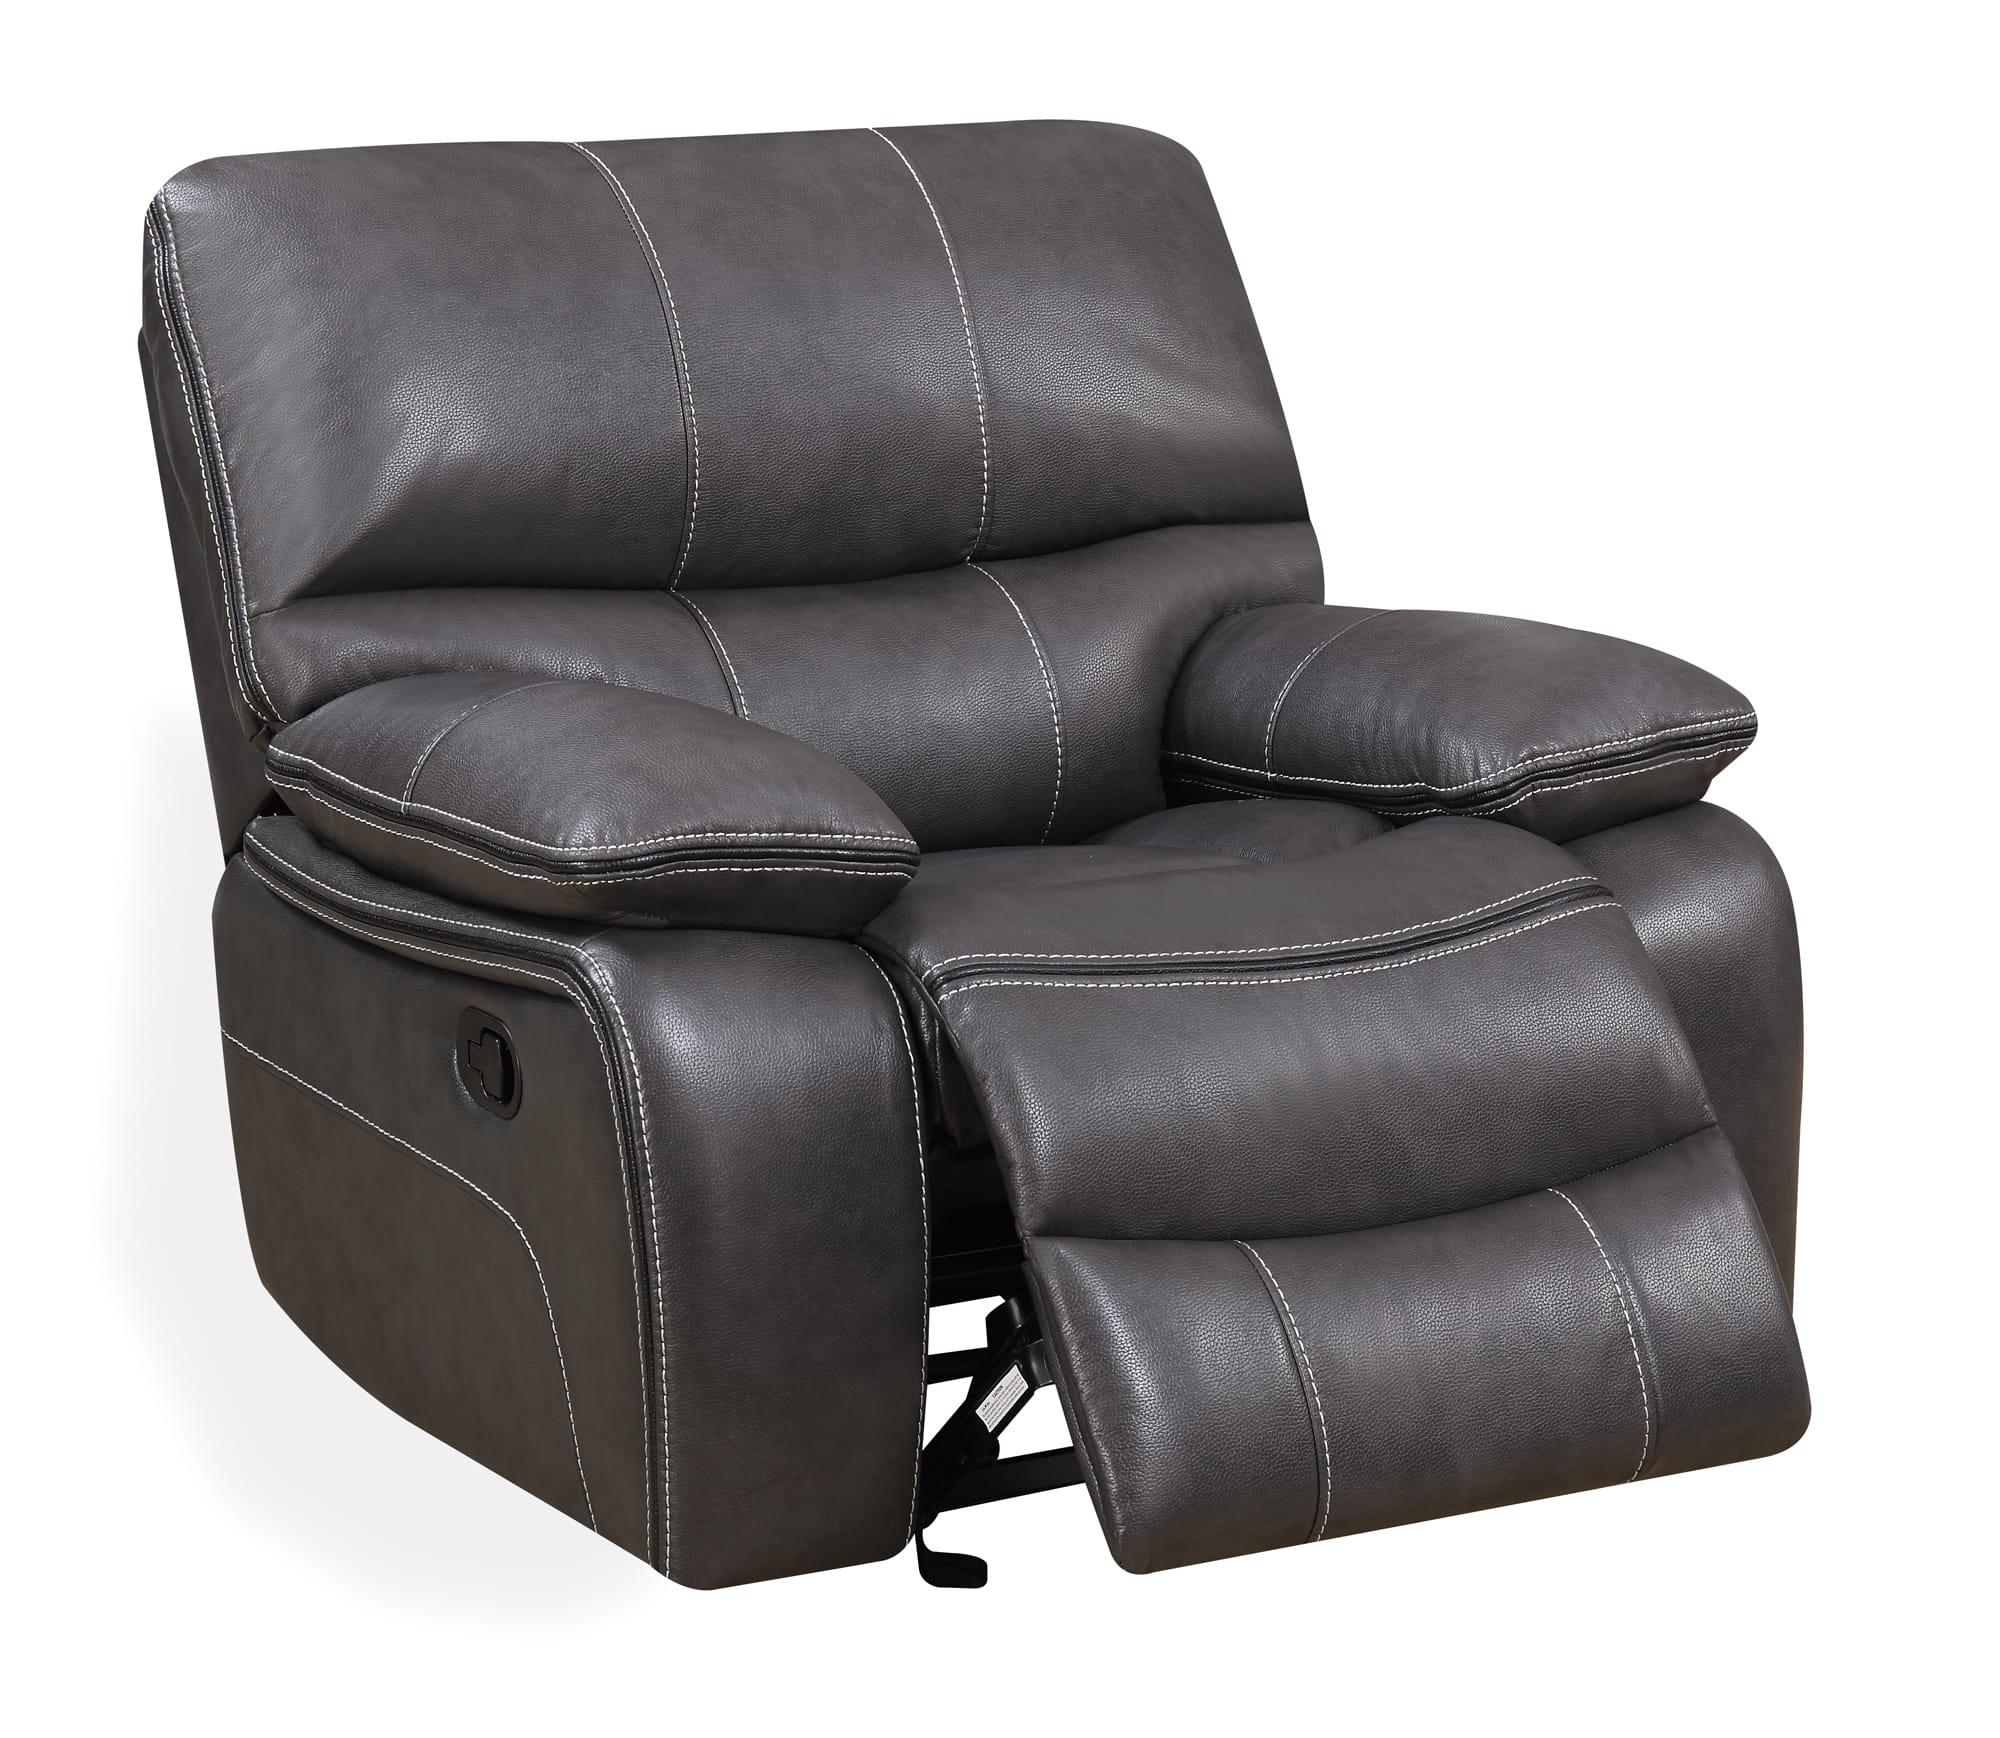 gray leather sofa recliner turkish u0040 grey black glider reclining chair by global